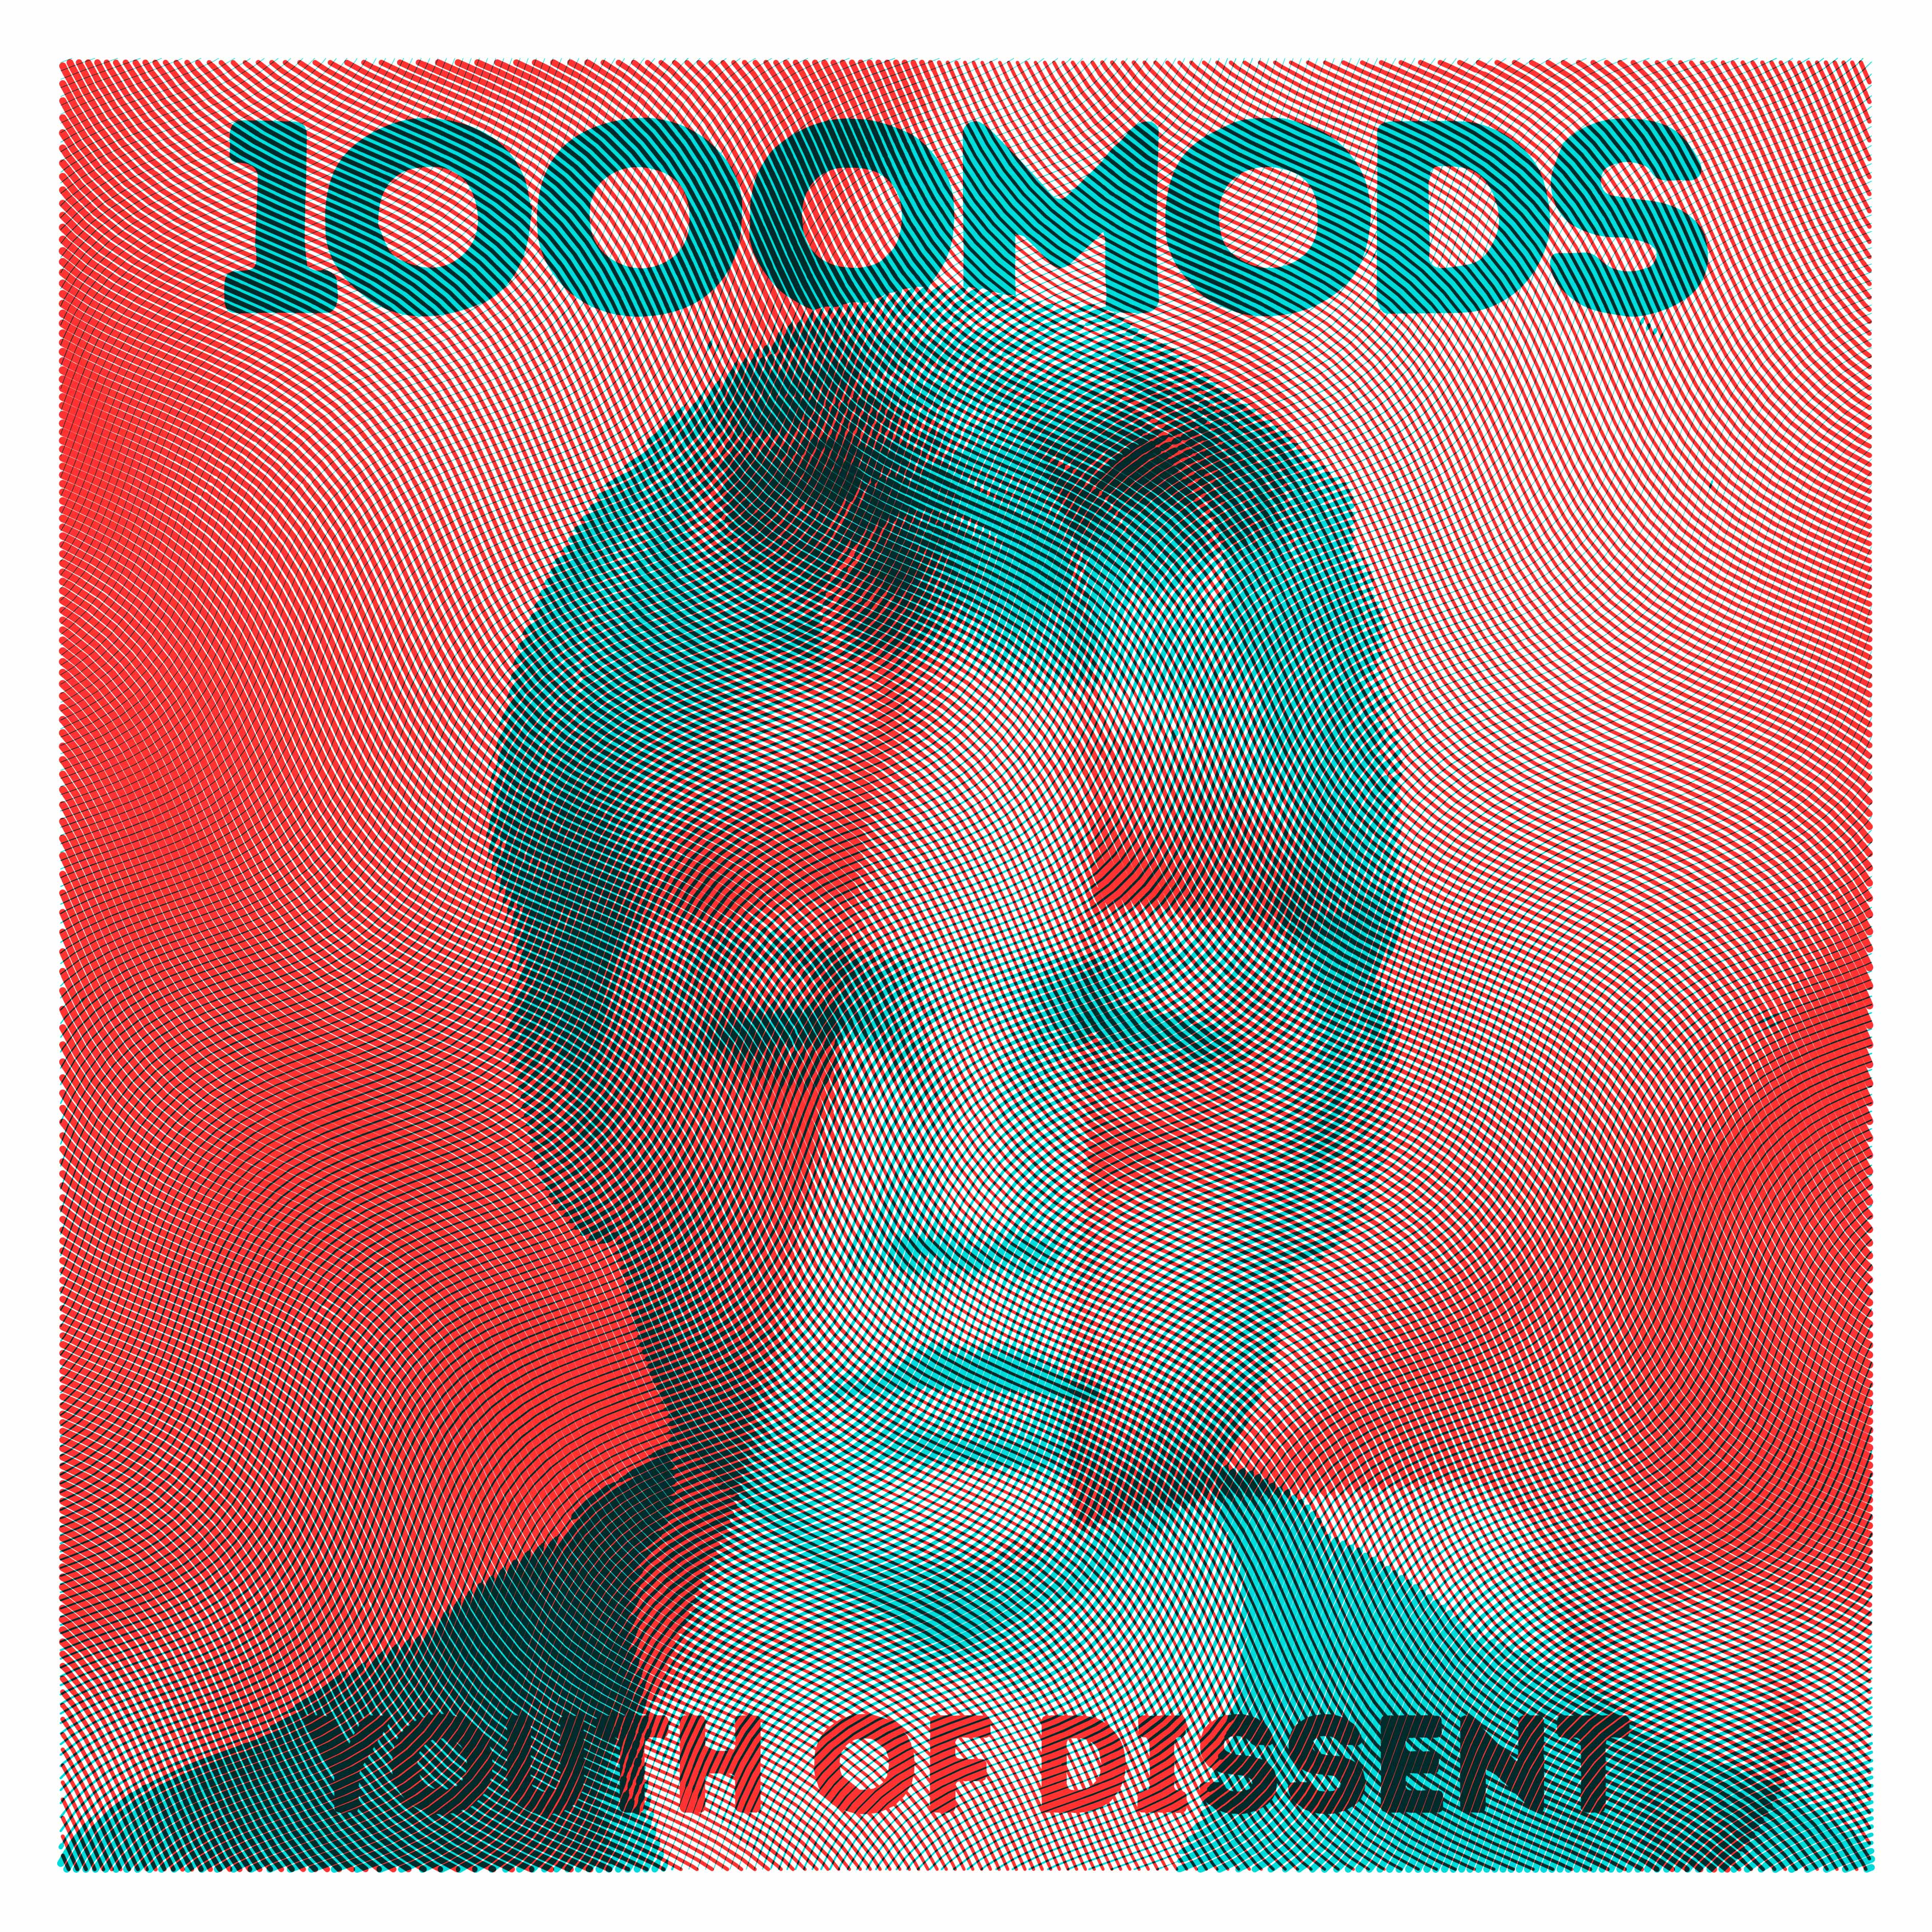 1000mods Youth of Dissent